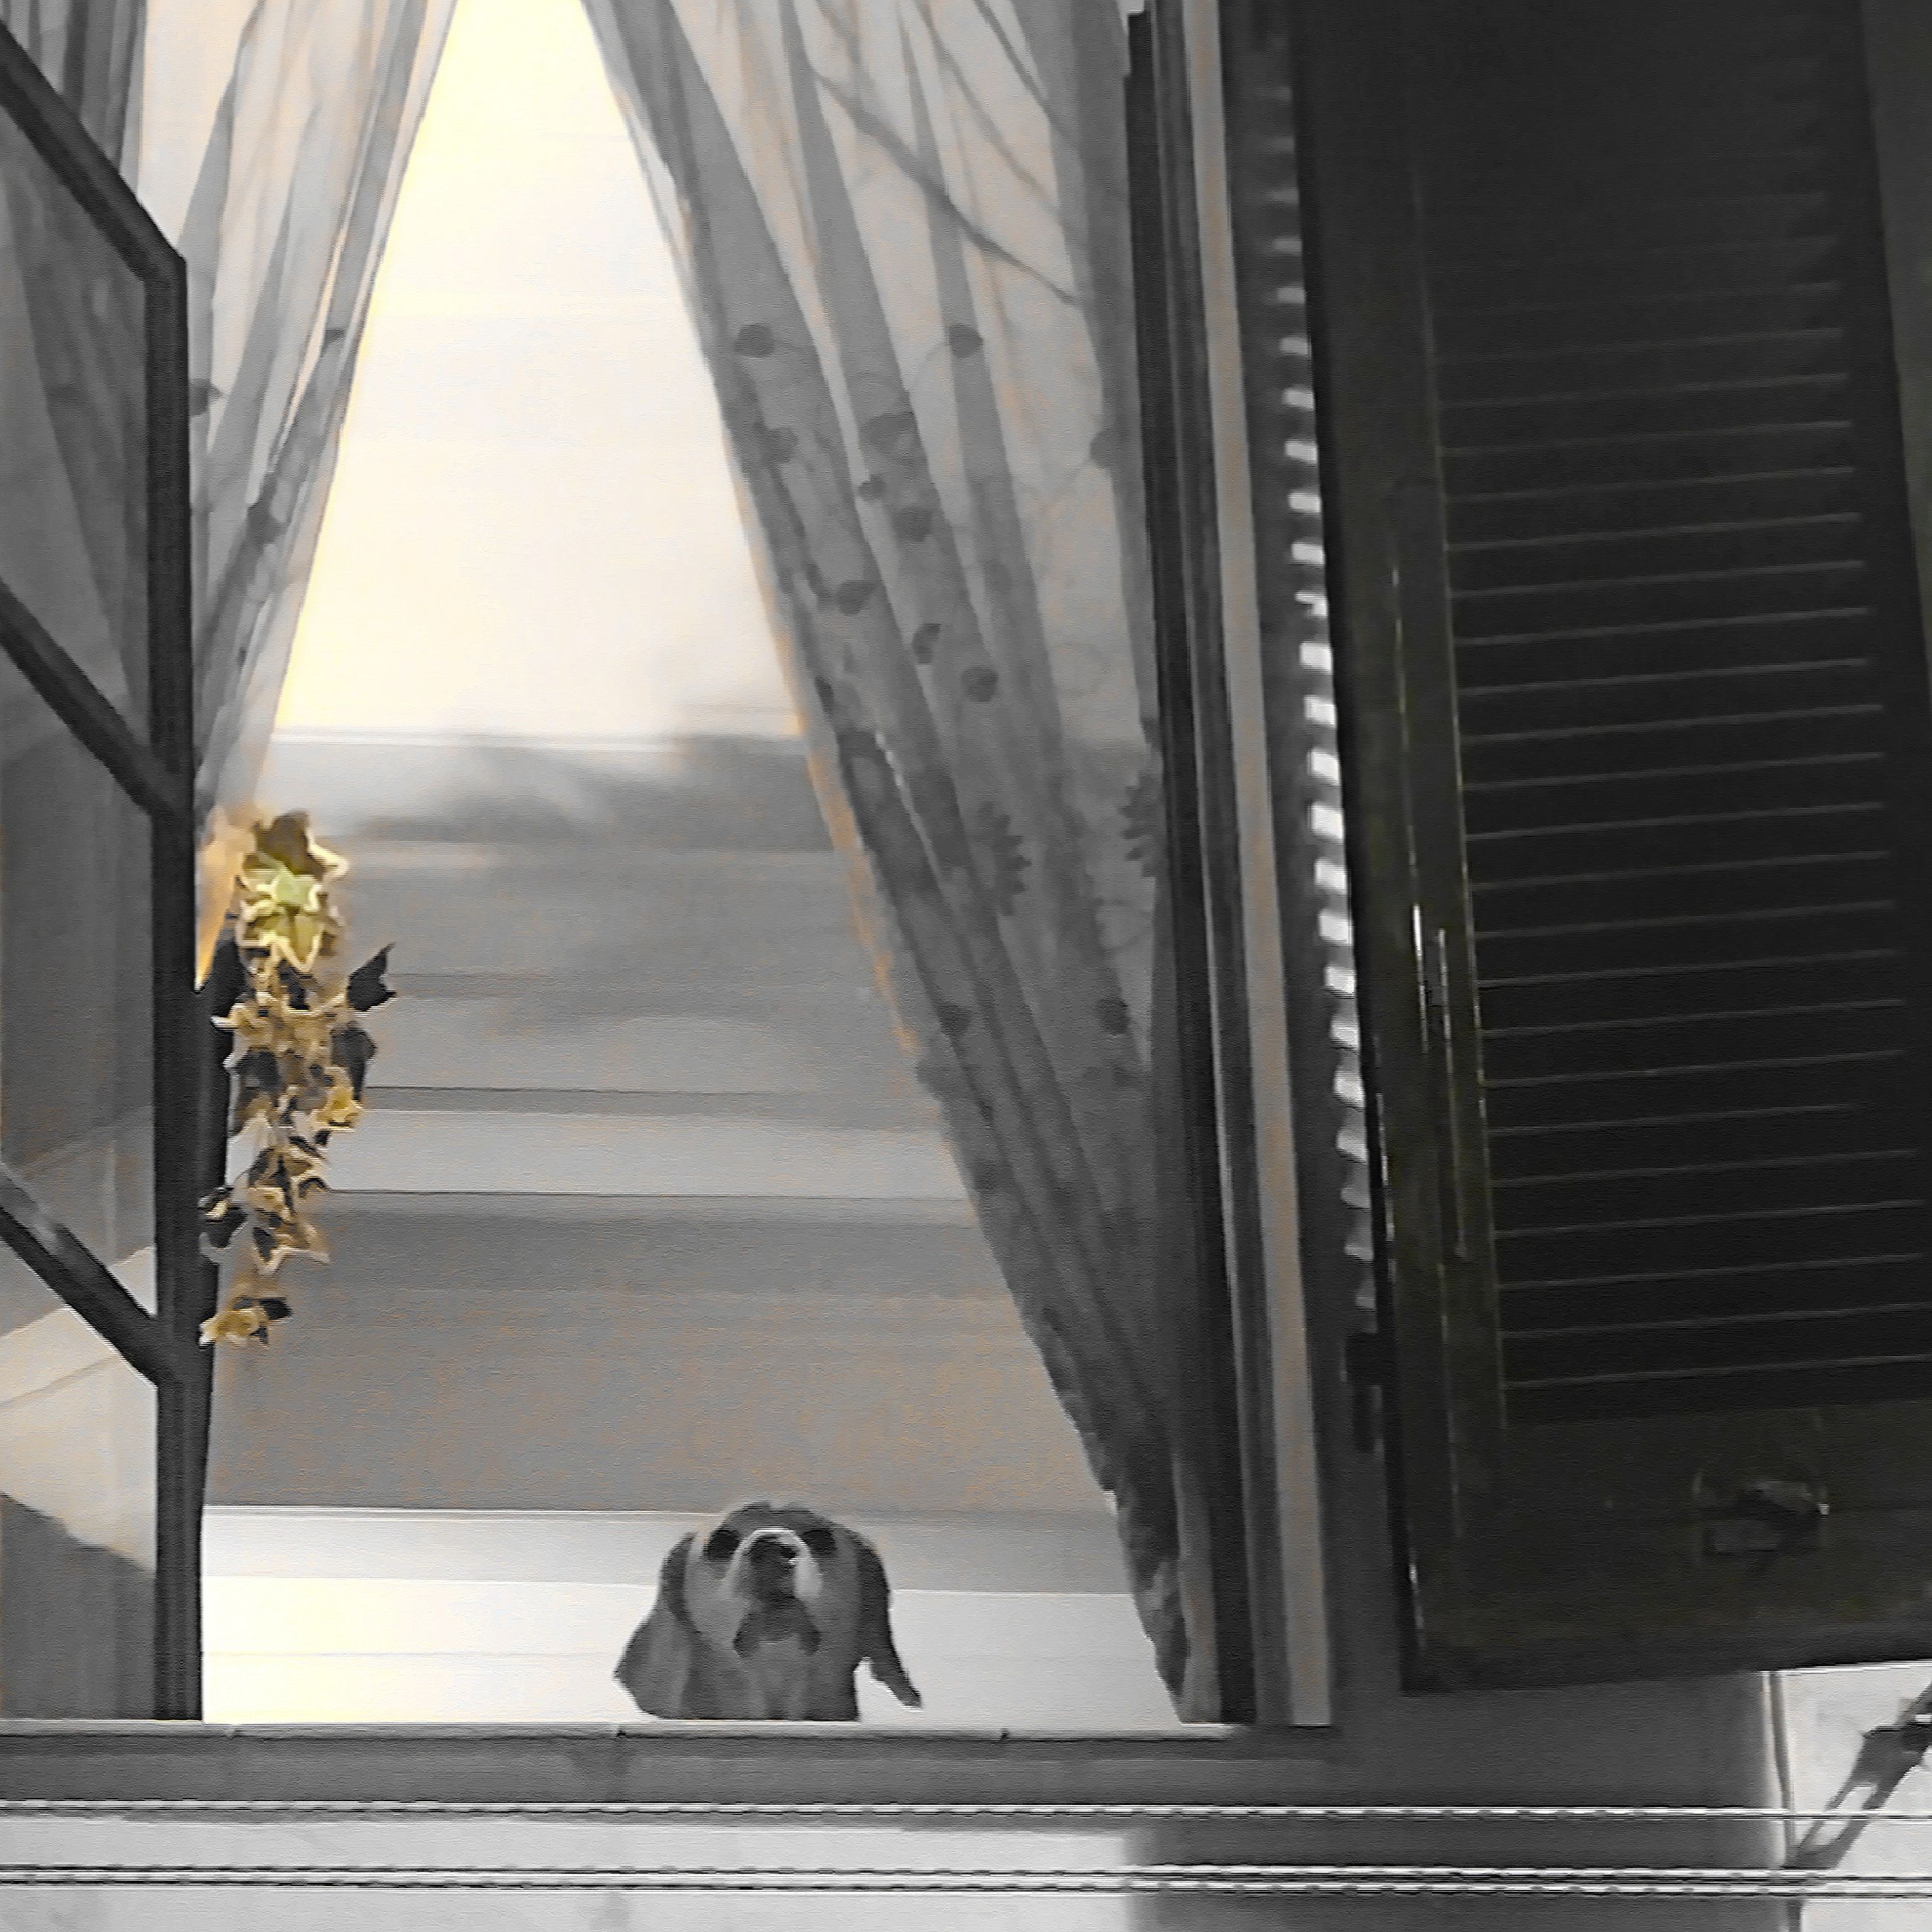 animal themes, mammal, domestic animals, one animal, pets, dog, sitting, steps, full length, staircase, sky, in front of, outdoors, no people, zoology, distant, the way forward, pampered pets, loyalty